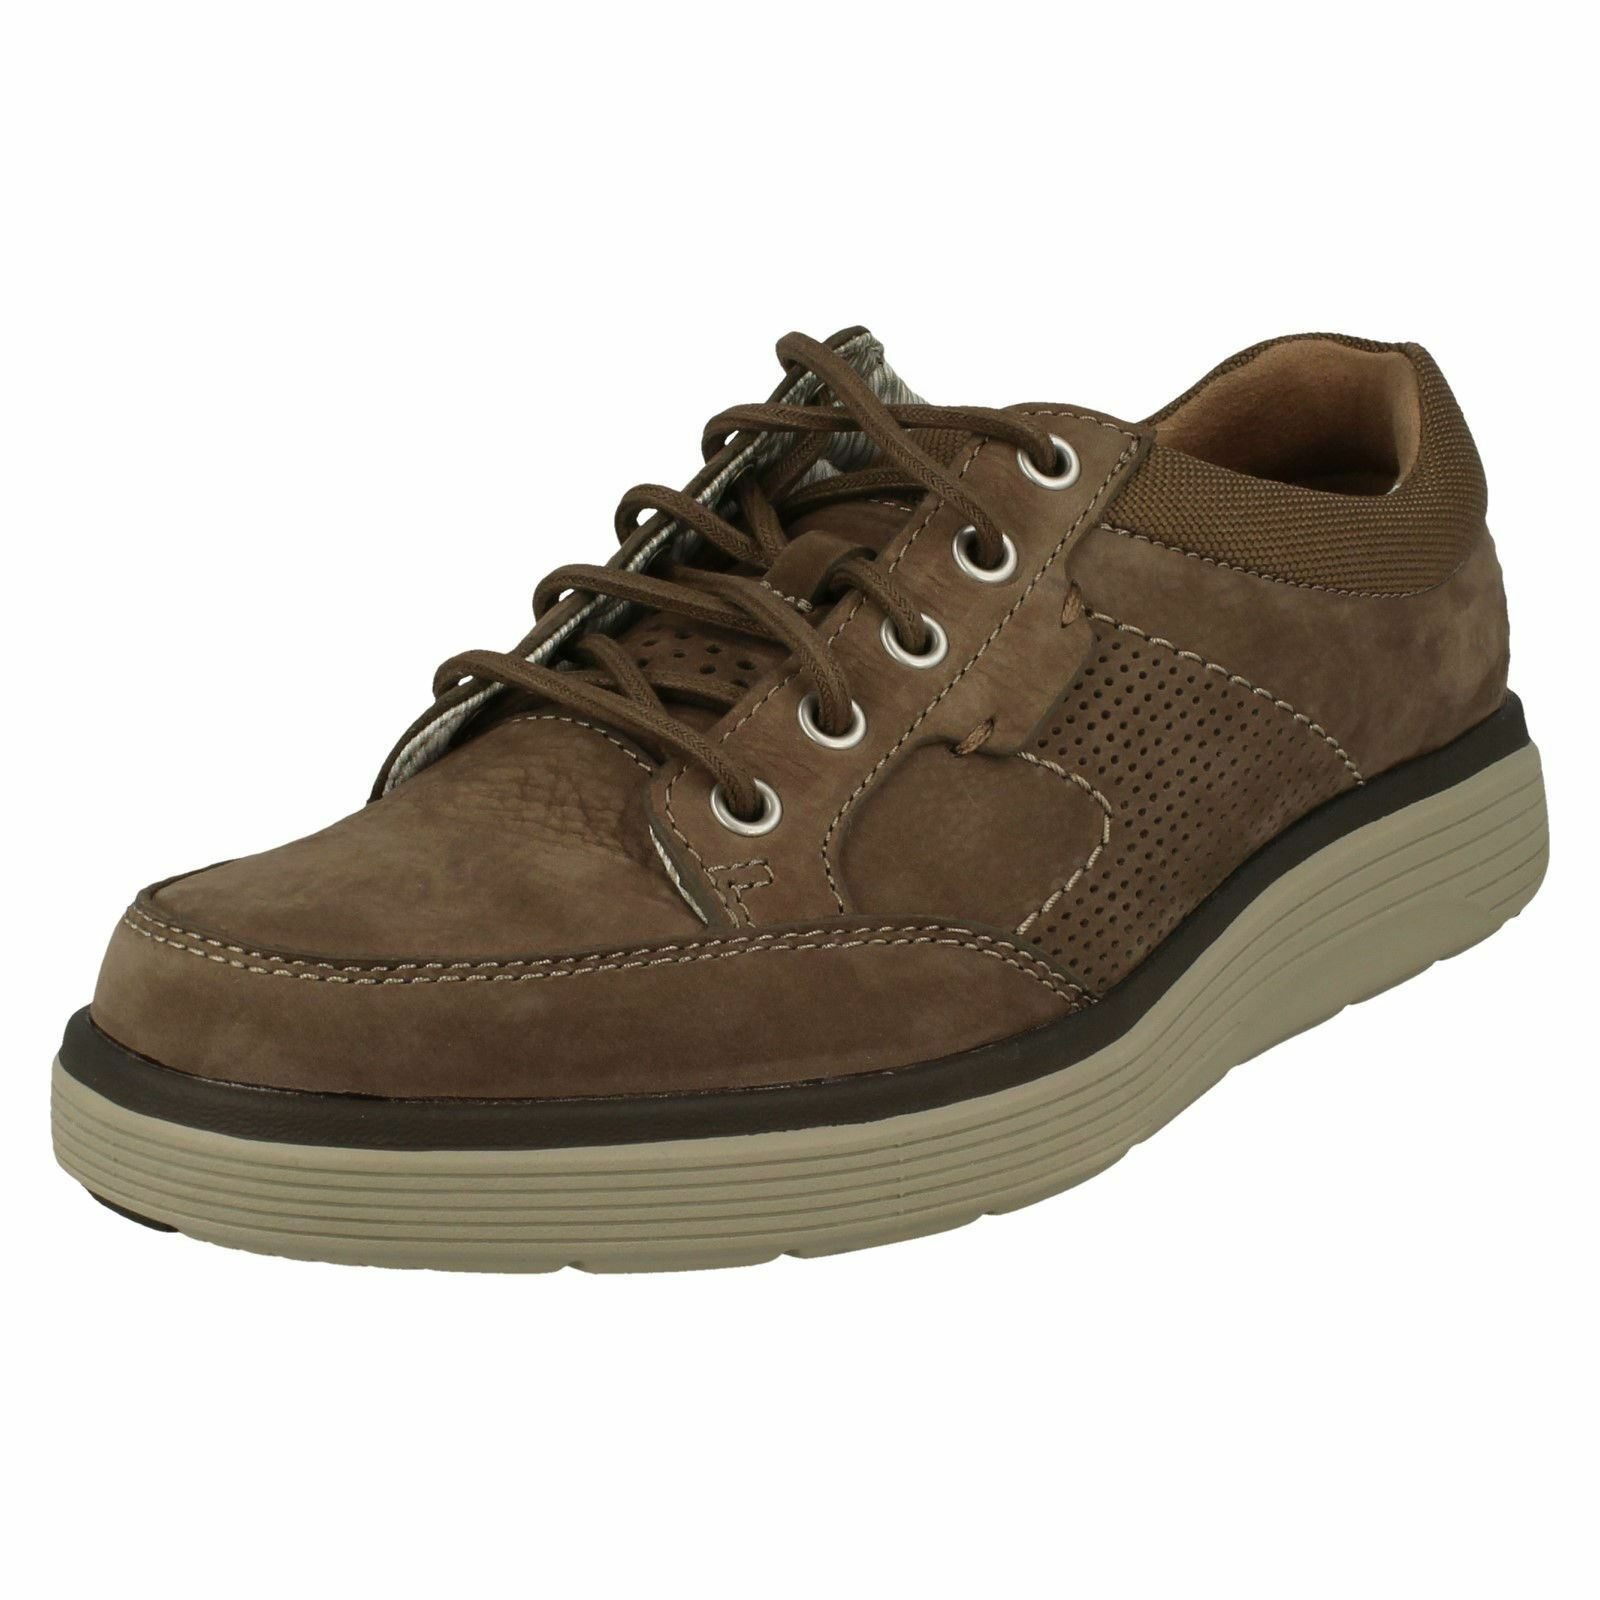 Uomo Clarks Casual Lace Up Trainers Un Abode Lace